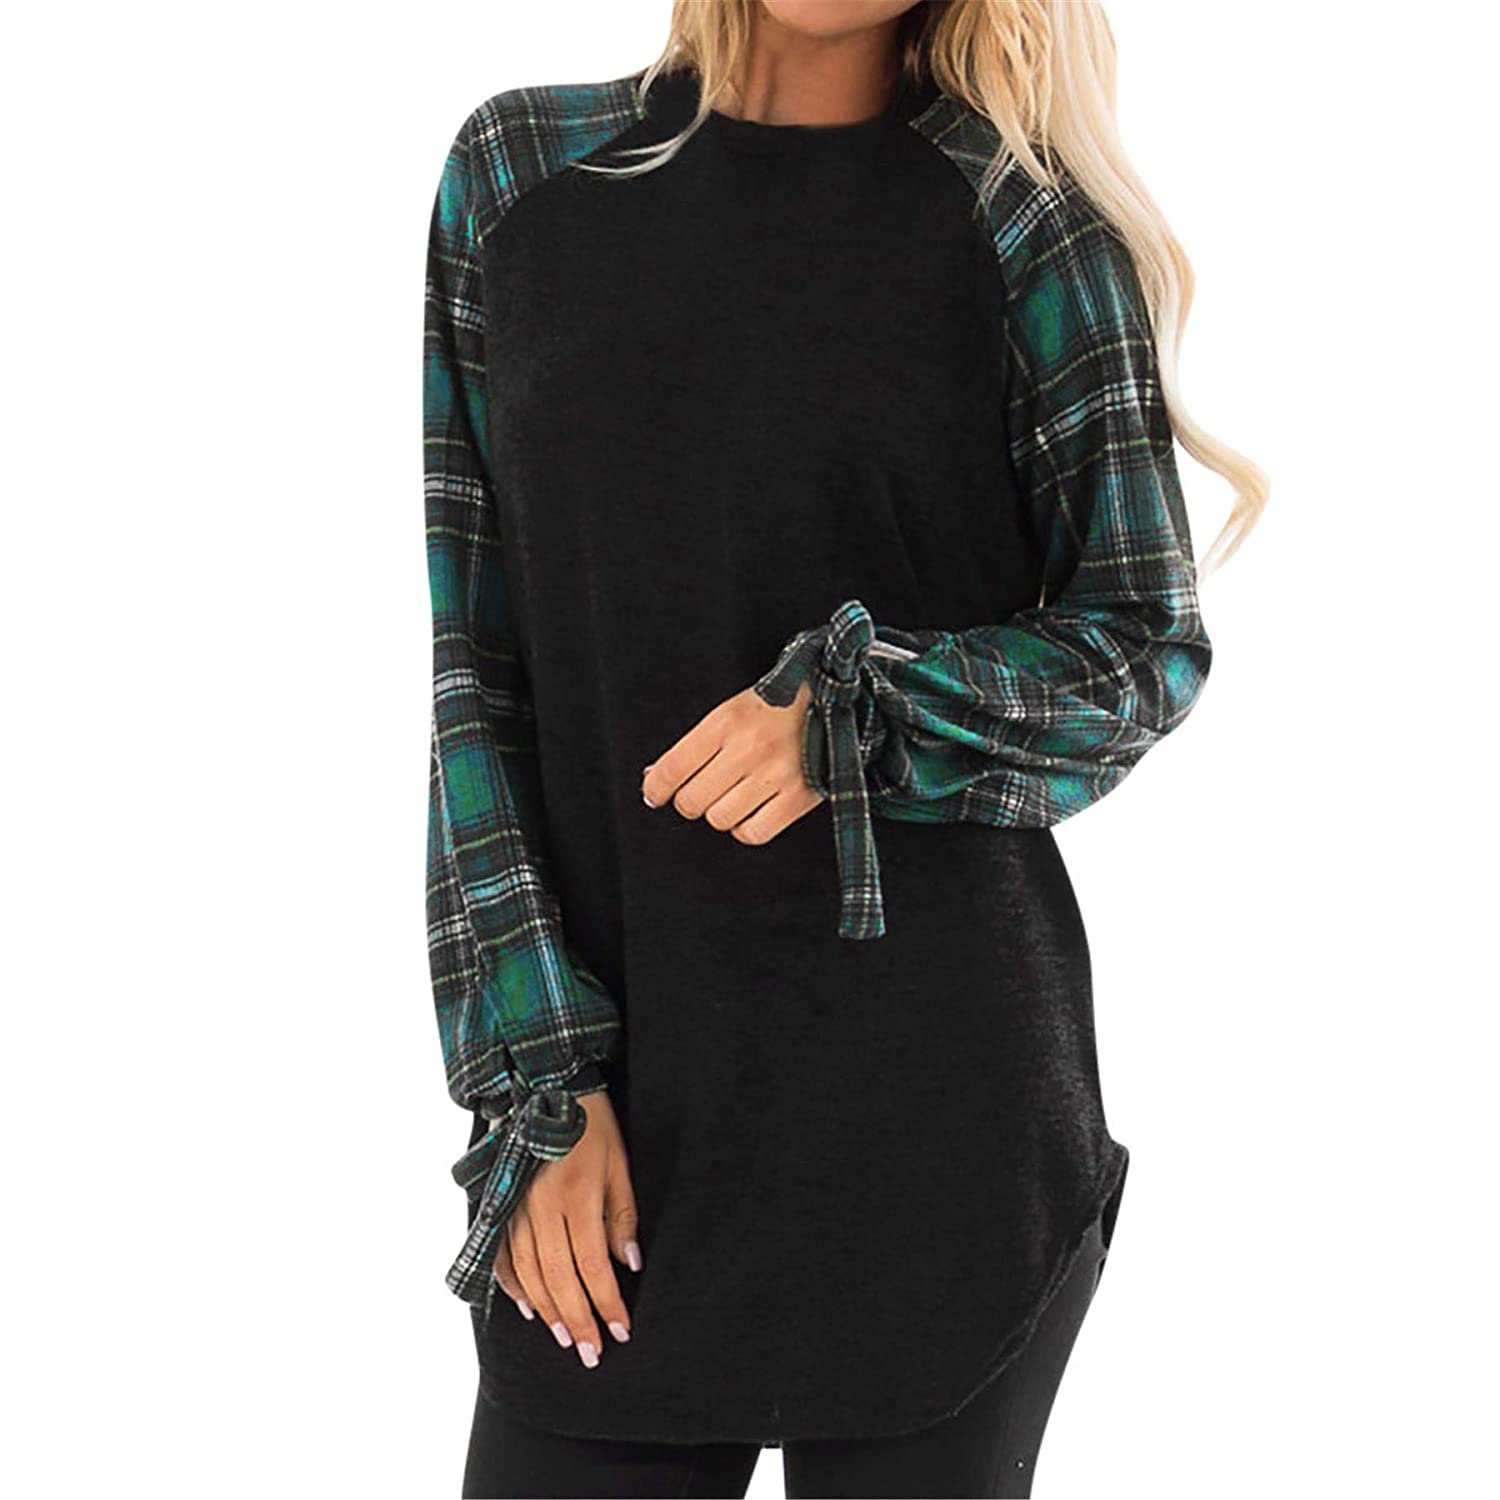 TIFENNY Loose Tops for Women Casual Plaid Long Sleeve Bow Pullover Blouse Shirts Sweatshirt